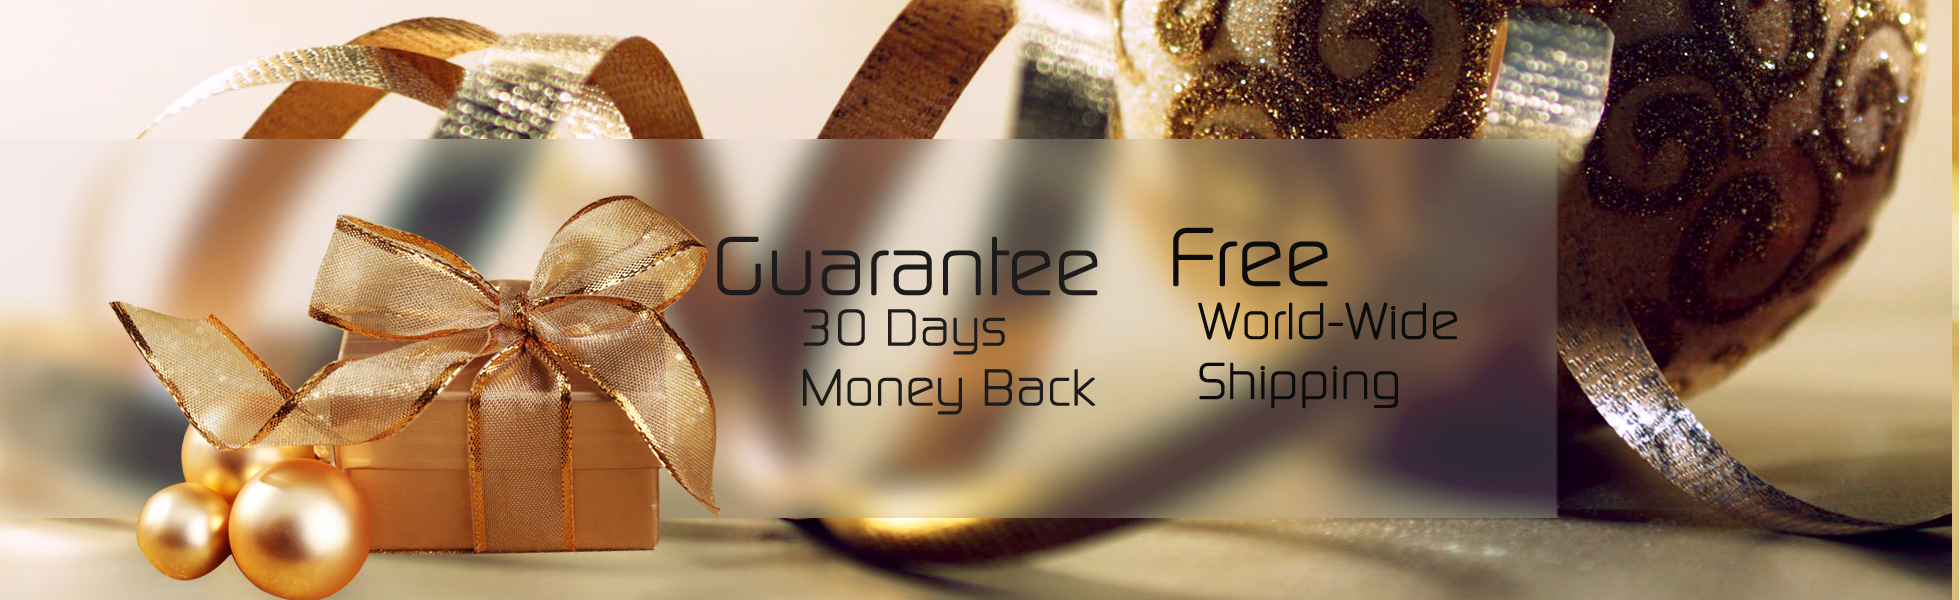 30 Day Money Back & Free Shipping